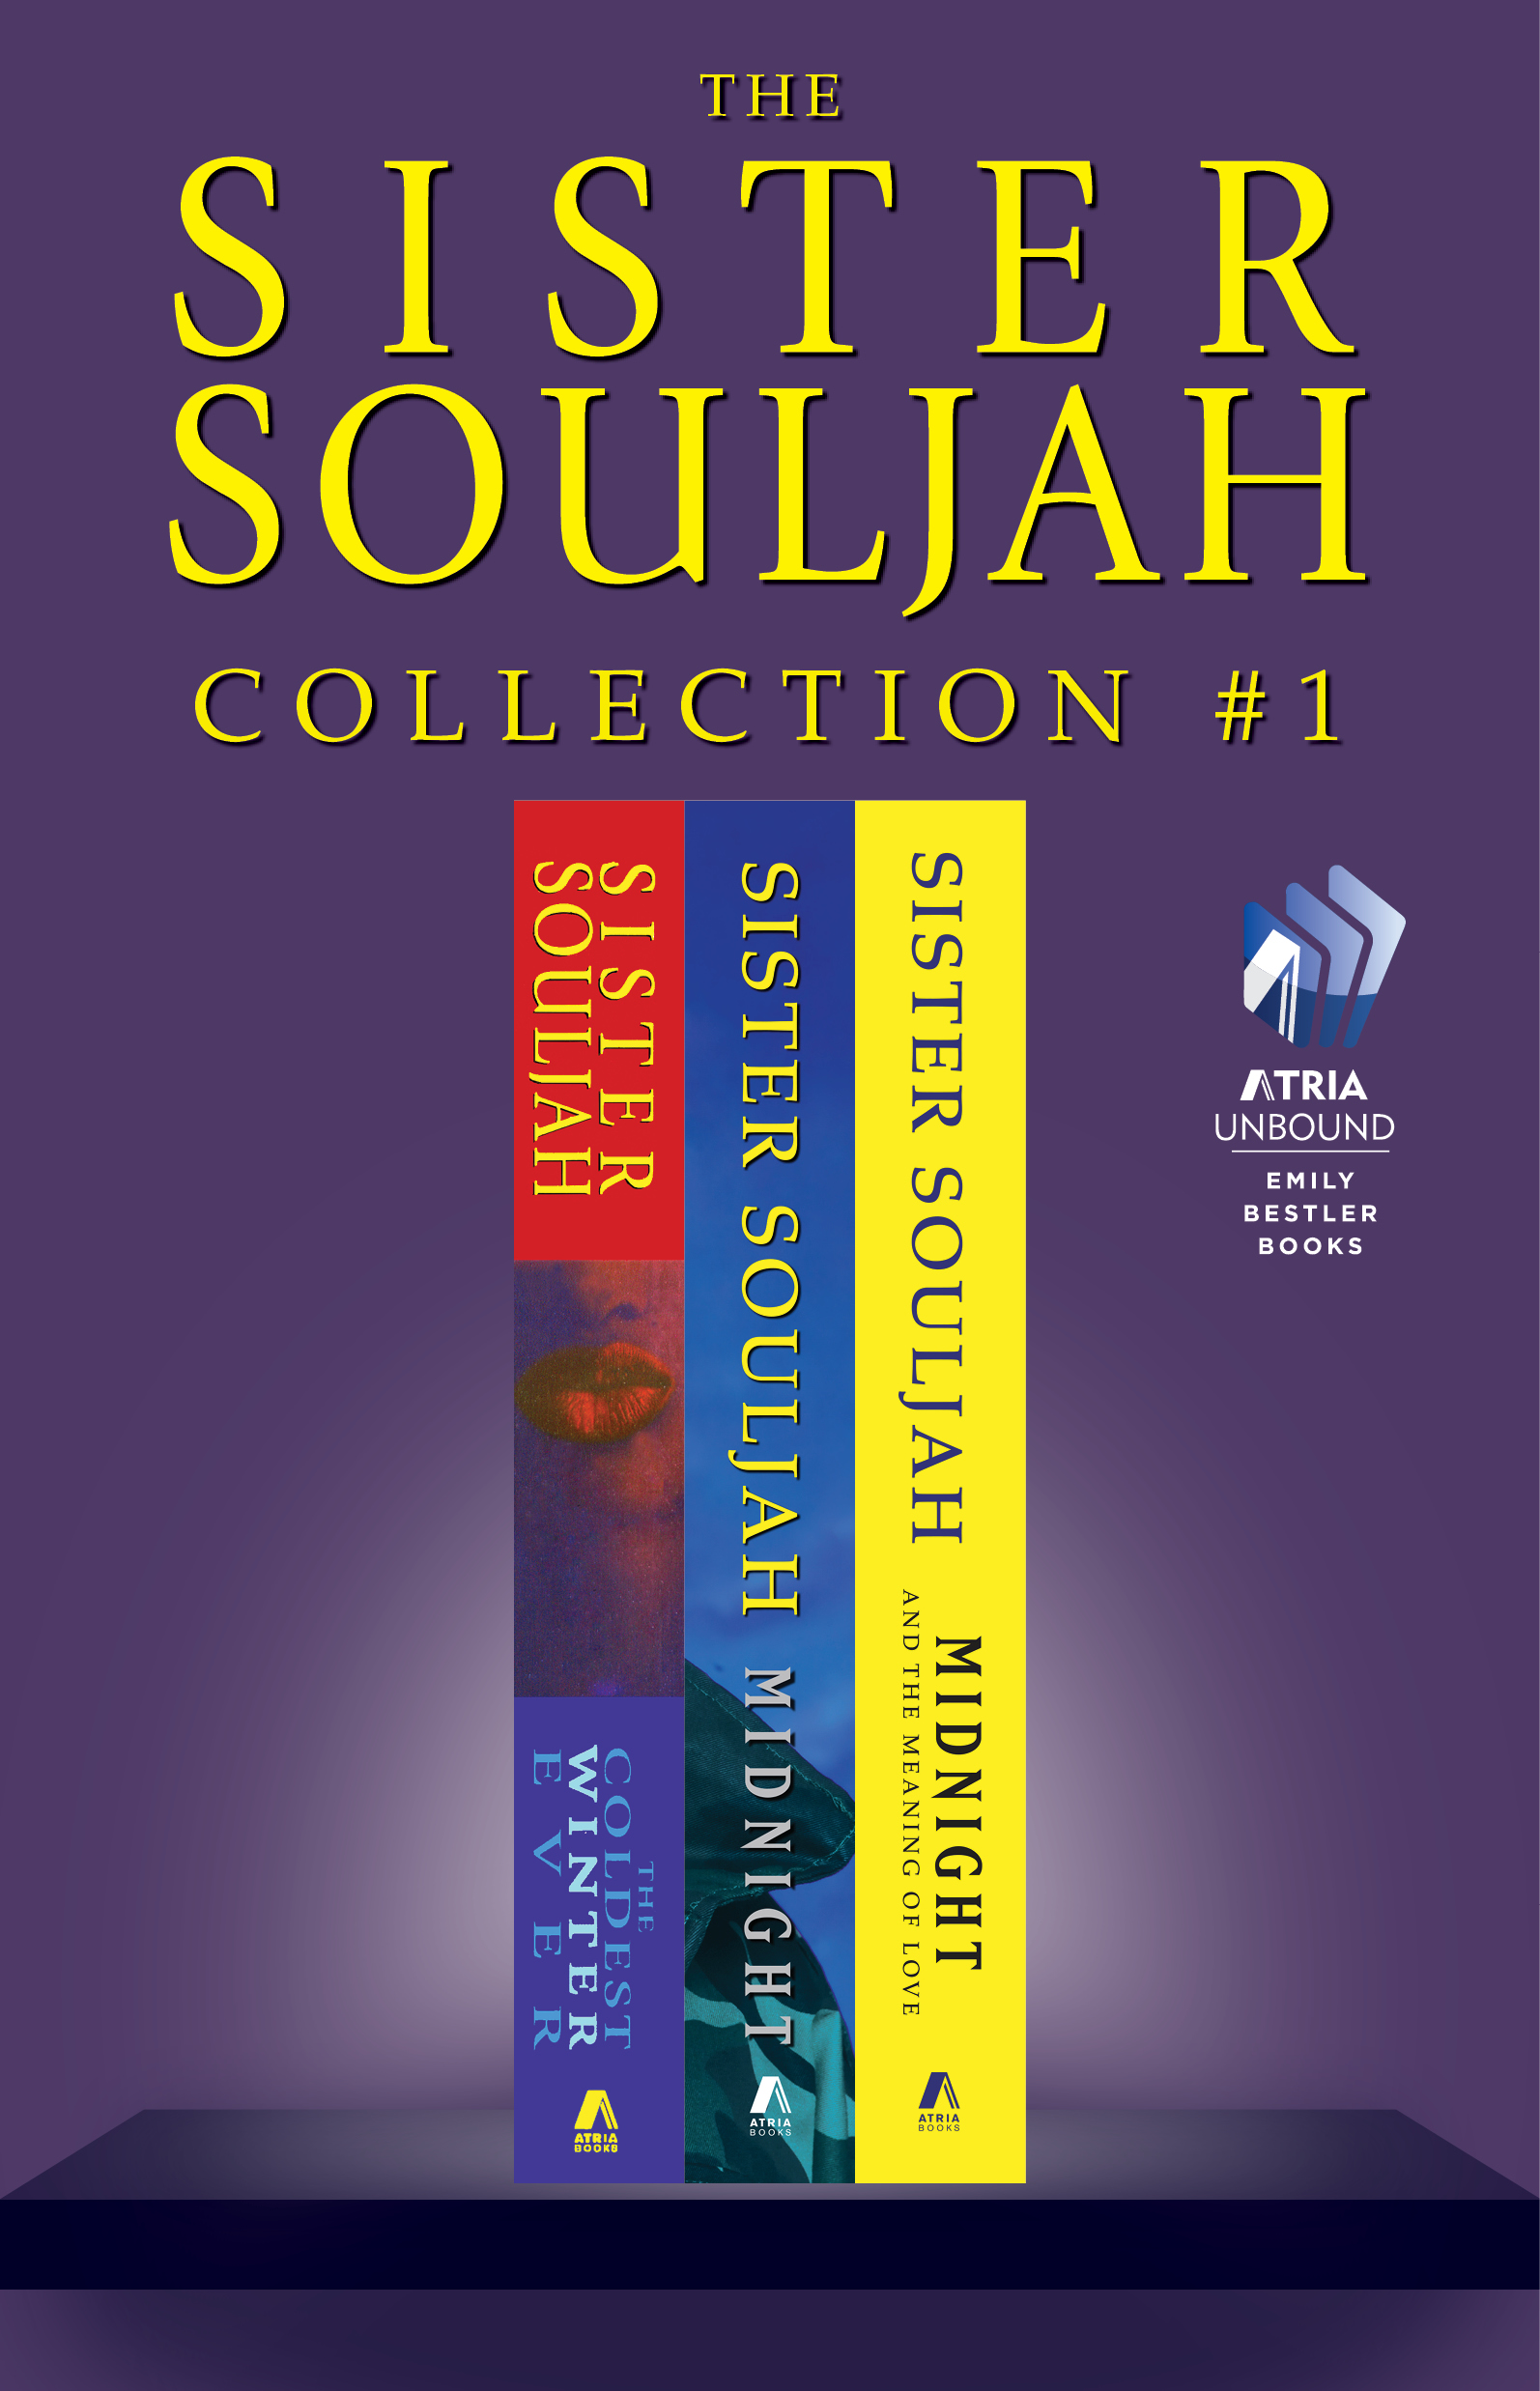 The Sister Souljah Collection #1 By: Sister Souljah